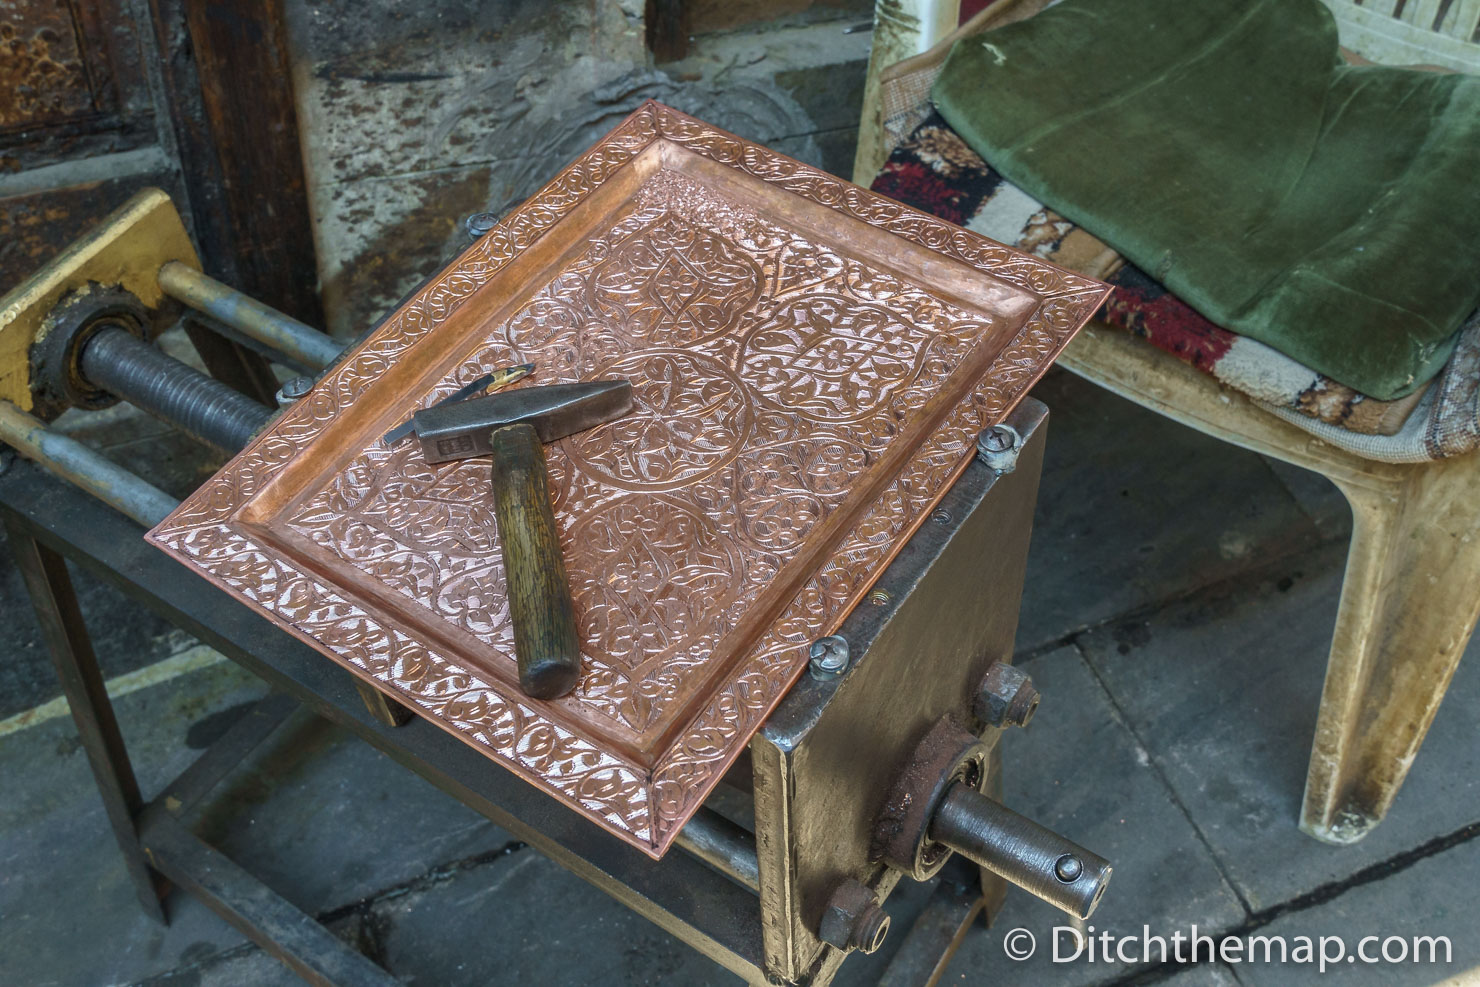 Engraved Copper Plate